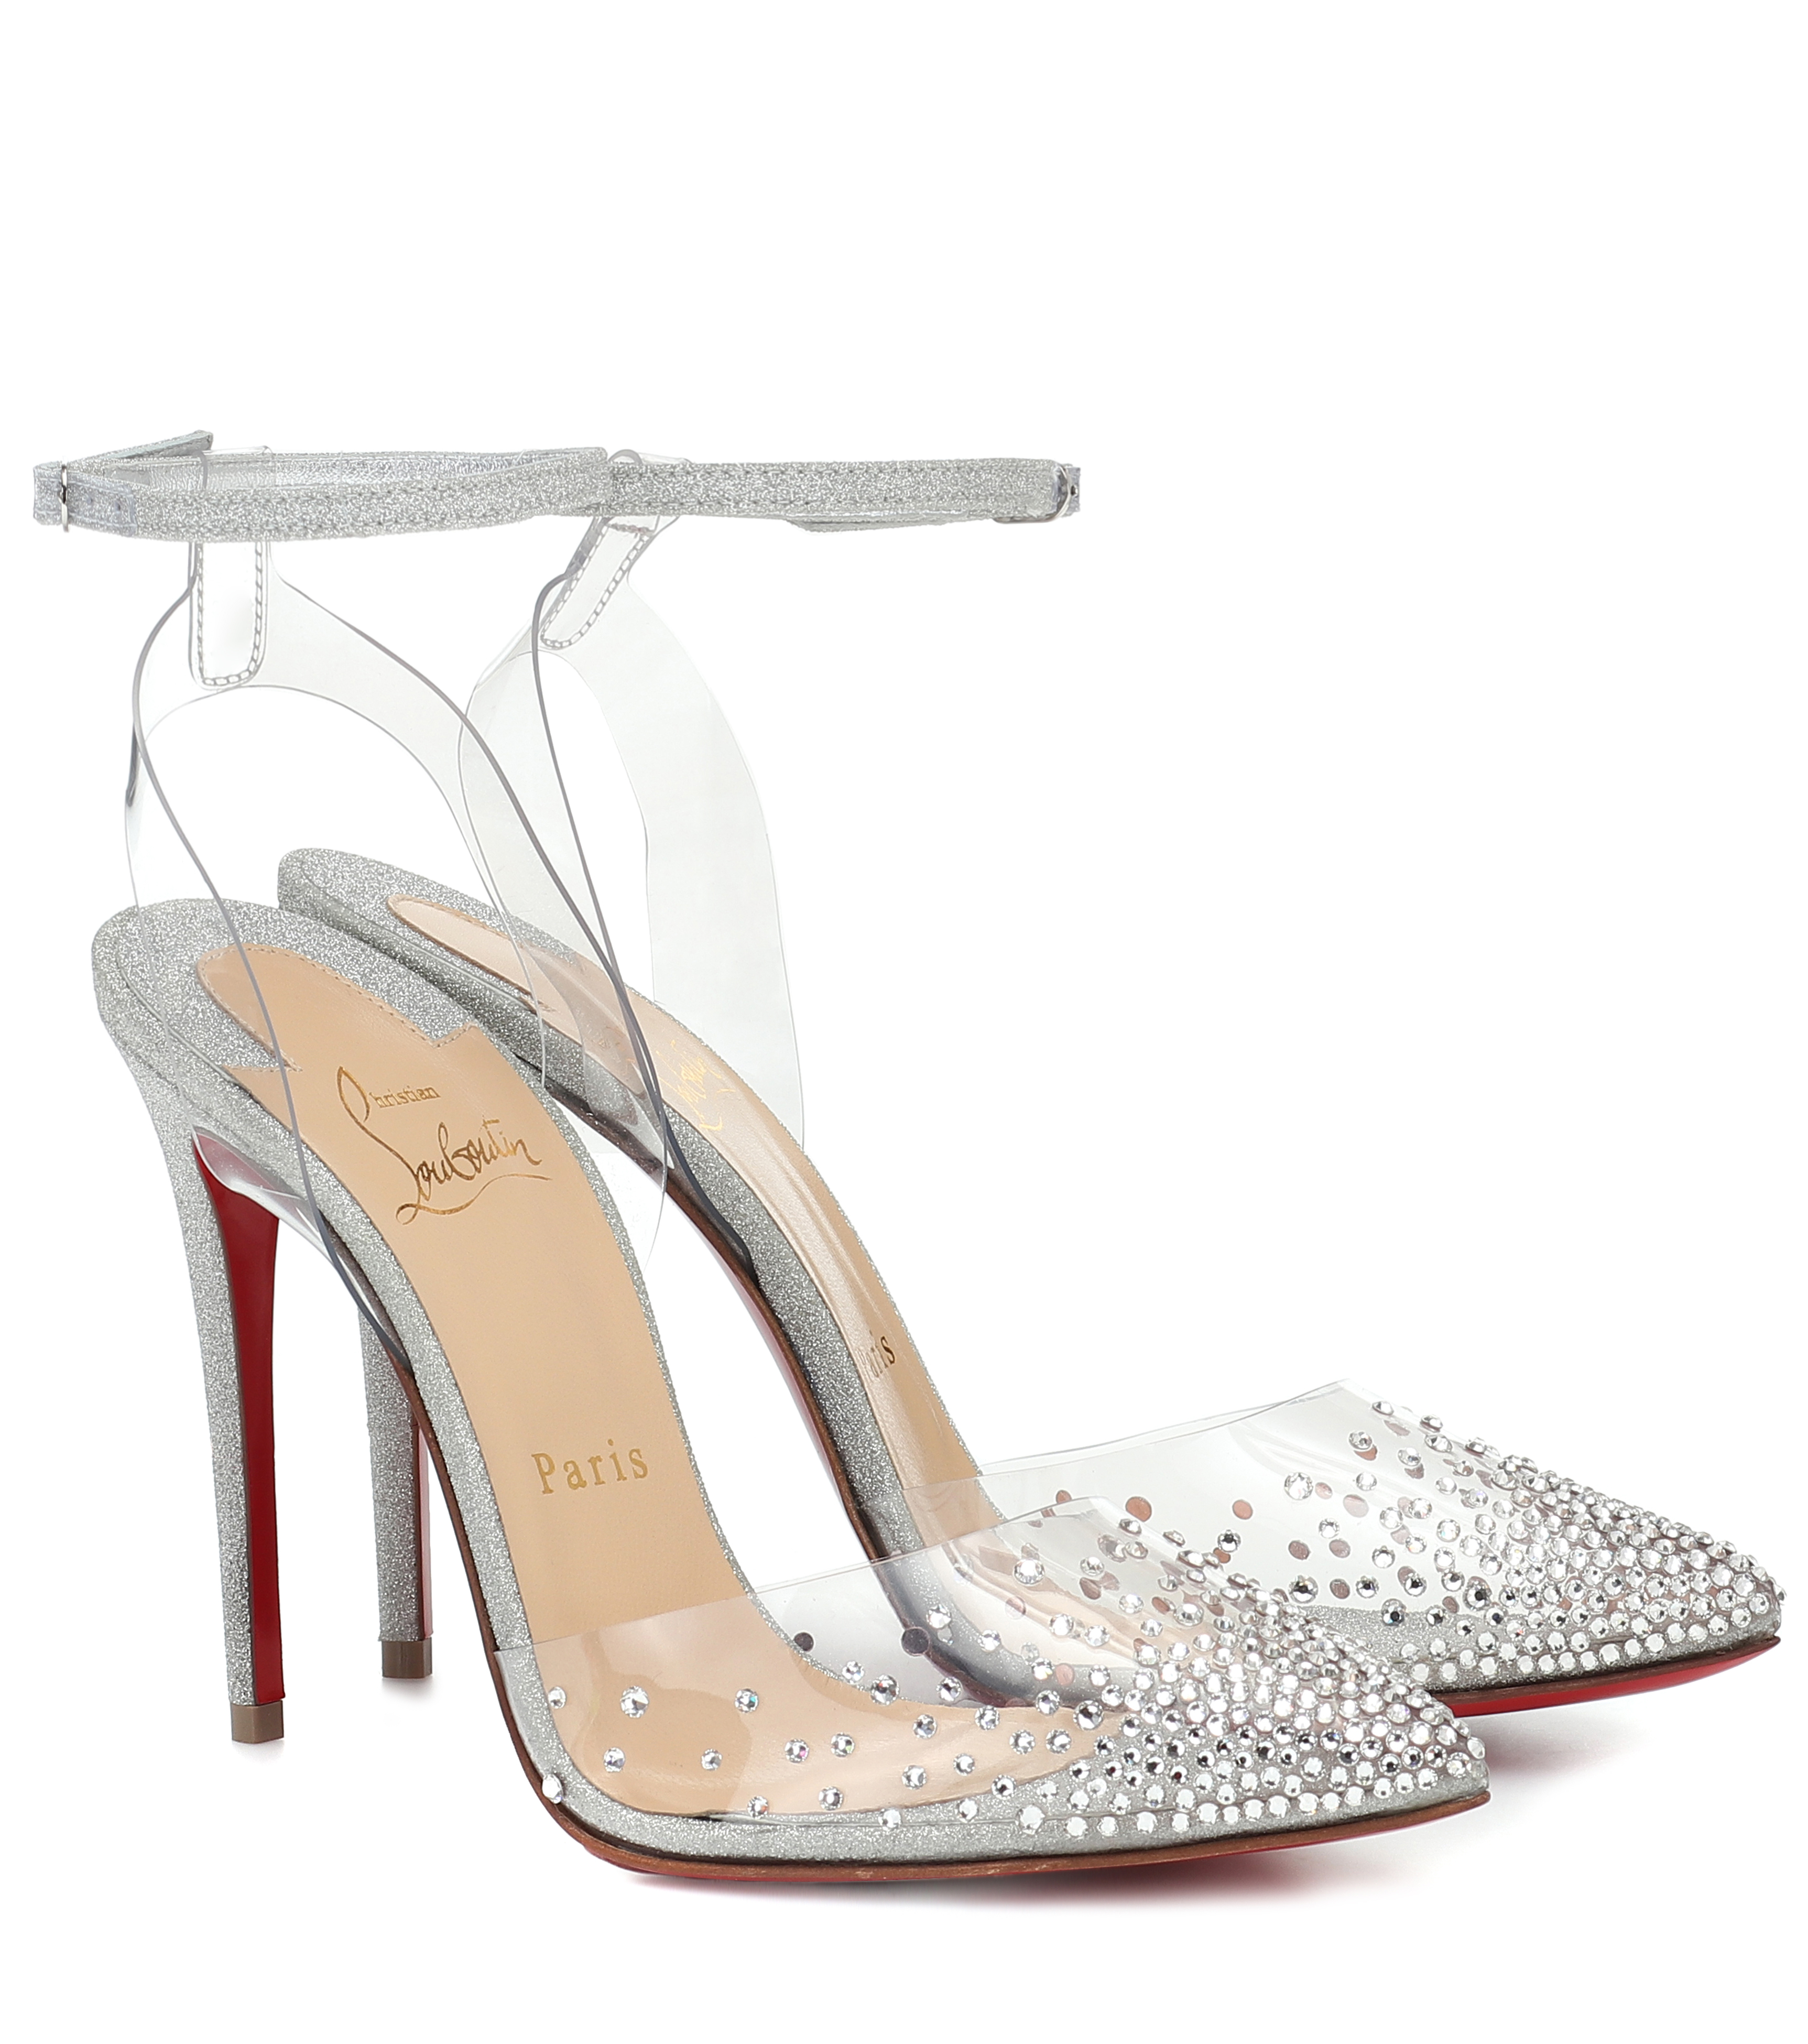 Mytheresa's exclusive capsule collection with Christian Louboutin is now available (фото 7)